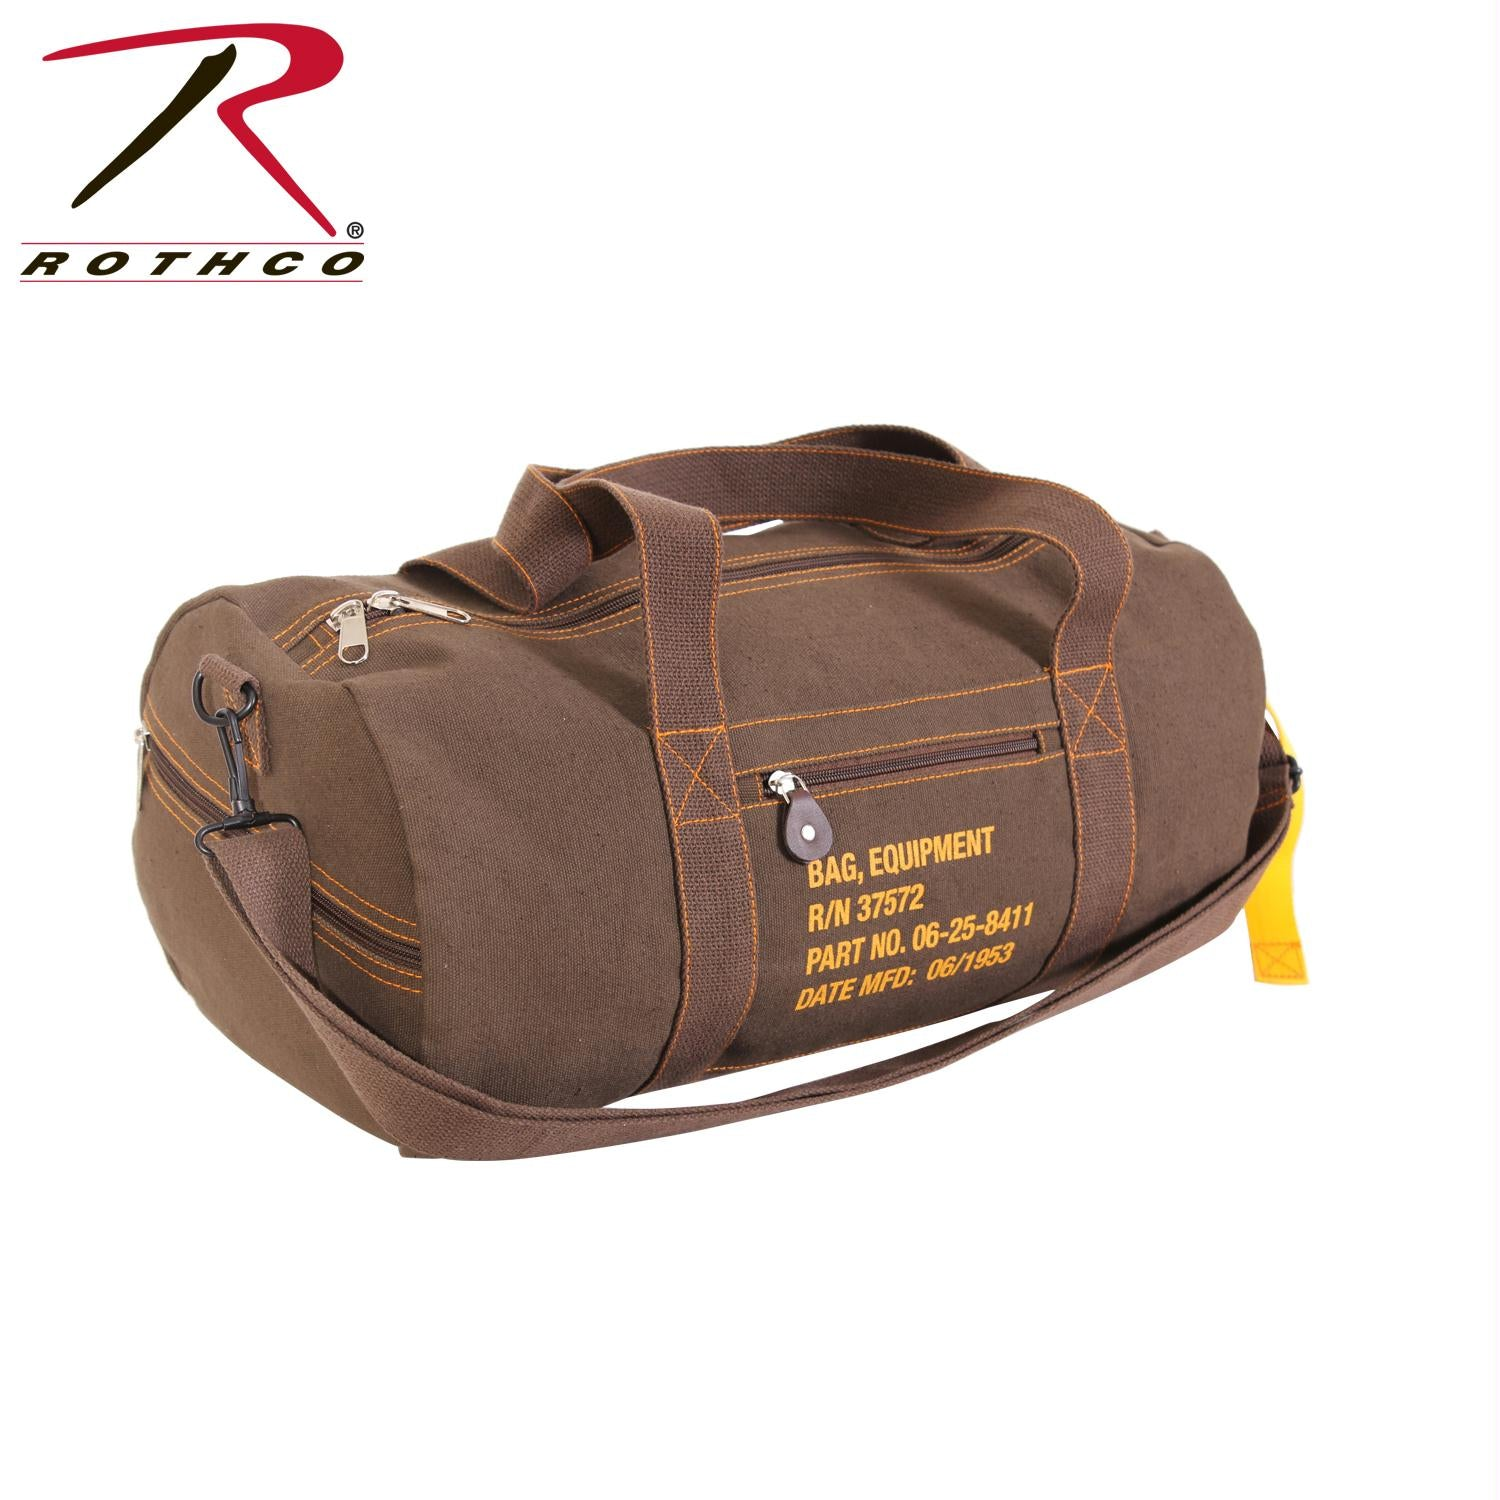 Rothco Canvas Equipment Bag - Earth Brown